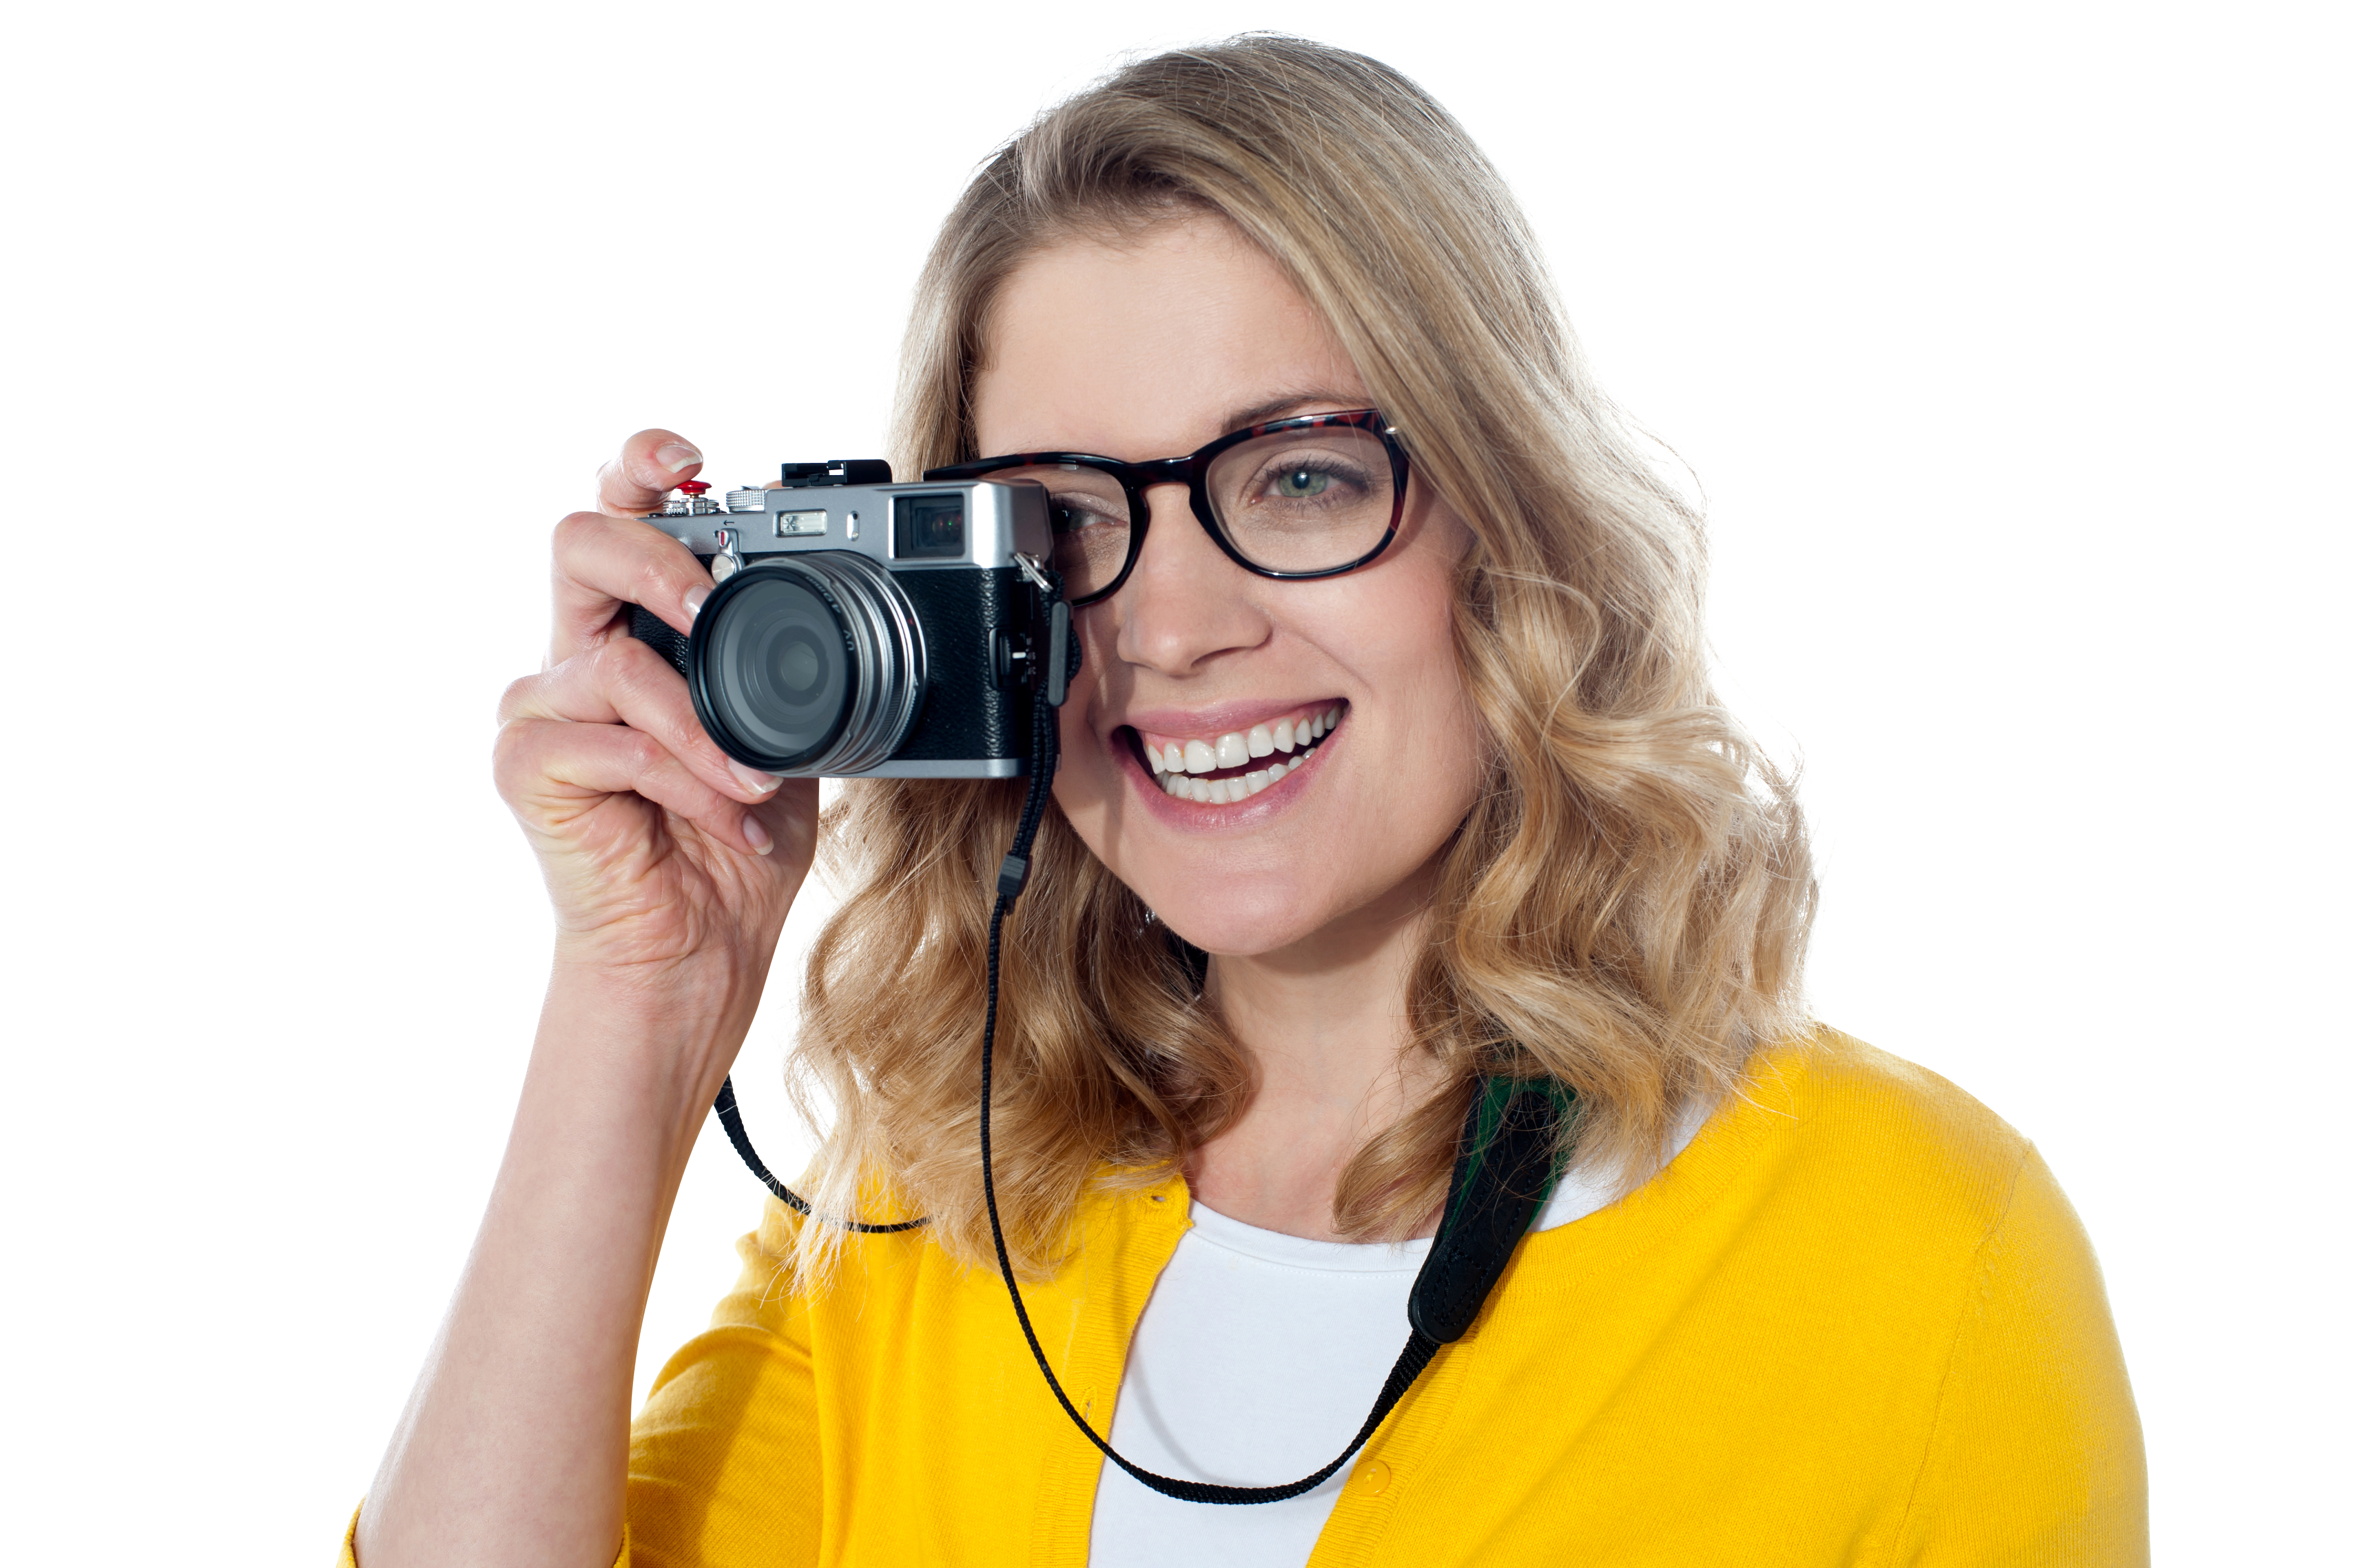 Photographer PNG Image